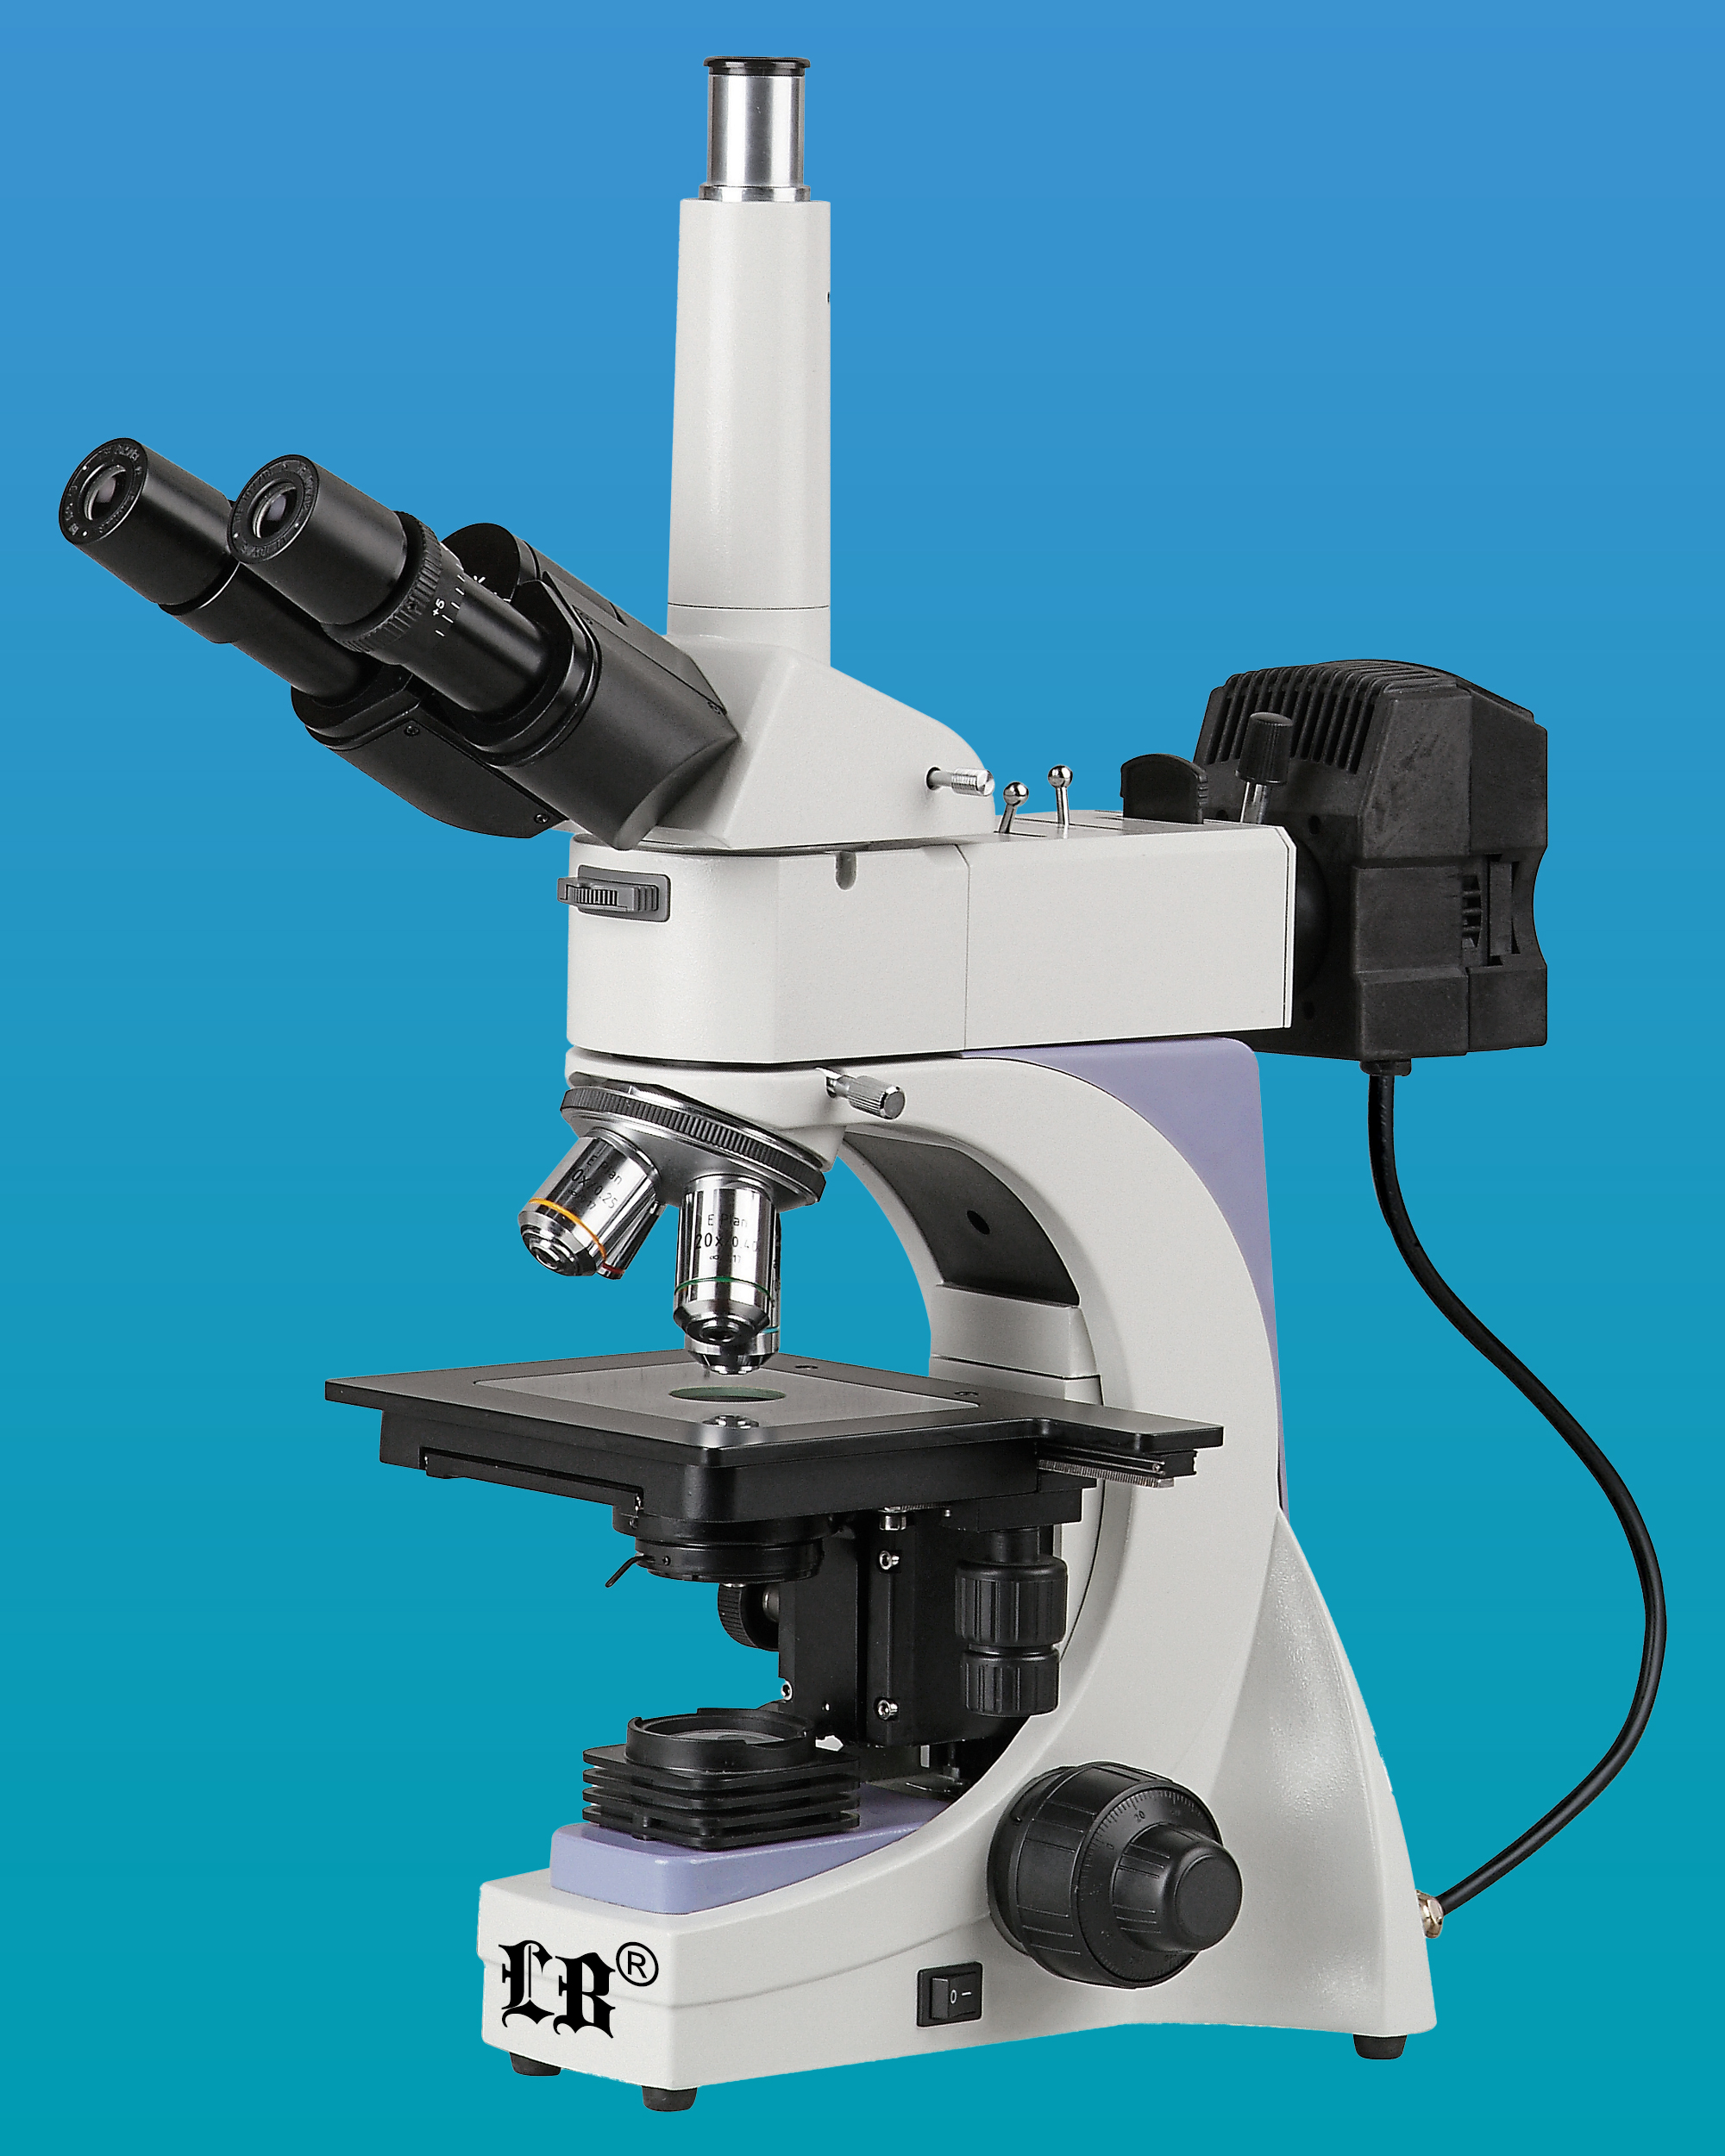 [LB-603] Trinocular Metallurgical Microscope w/ Infinite Optical System